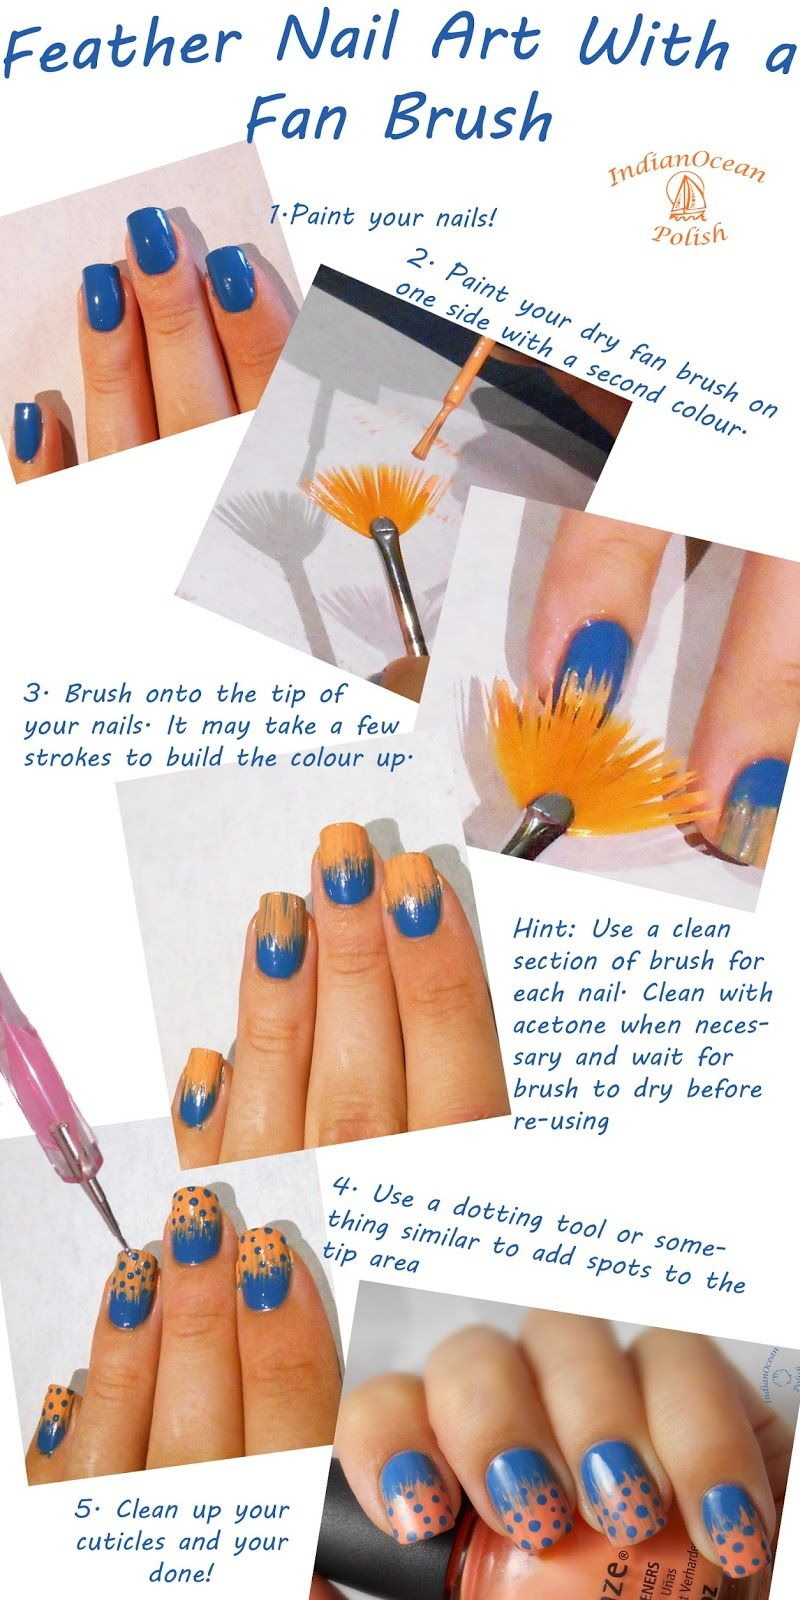 Indian Ocean Polish: Spotted Feather(?) Nail Art With a Fan Brush ...